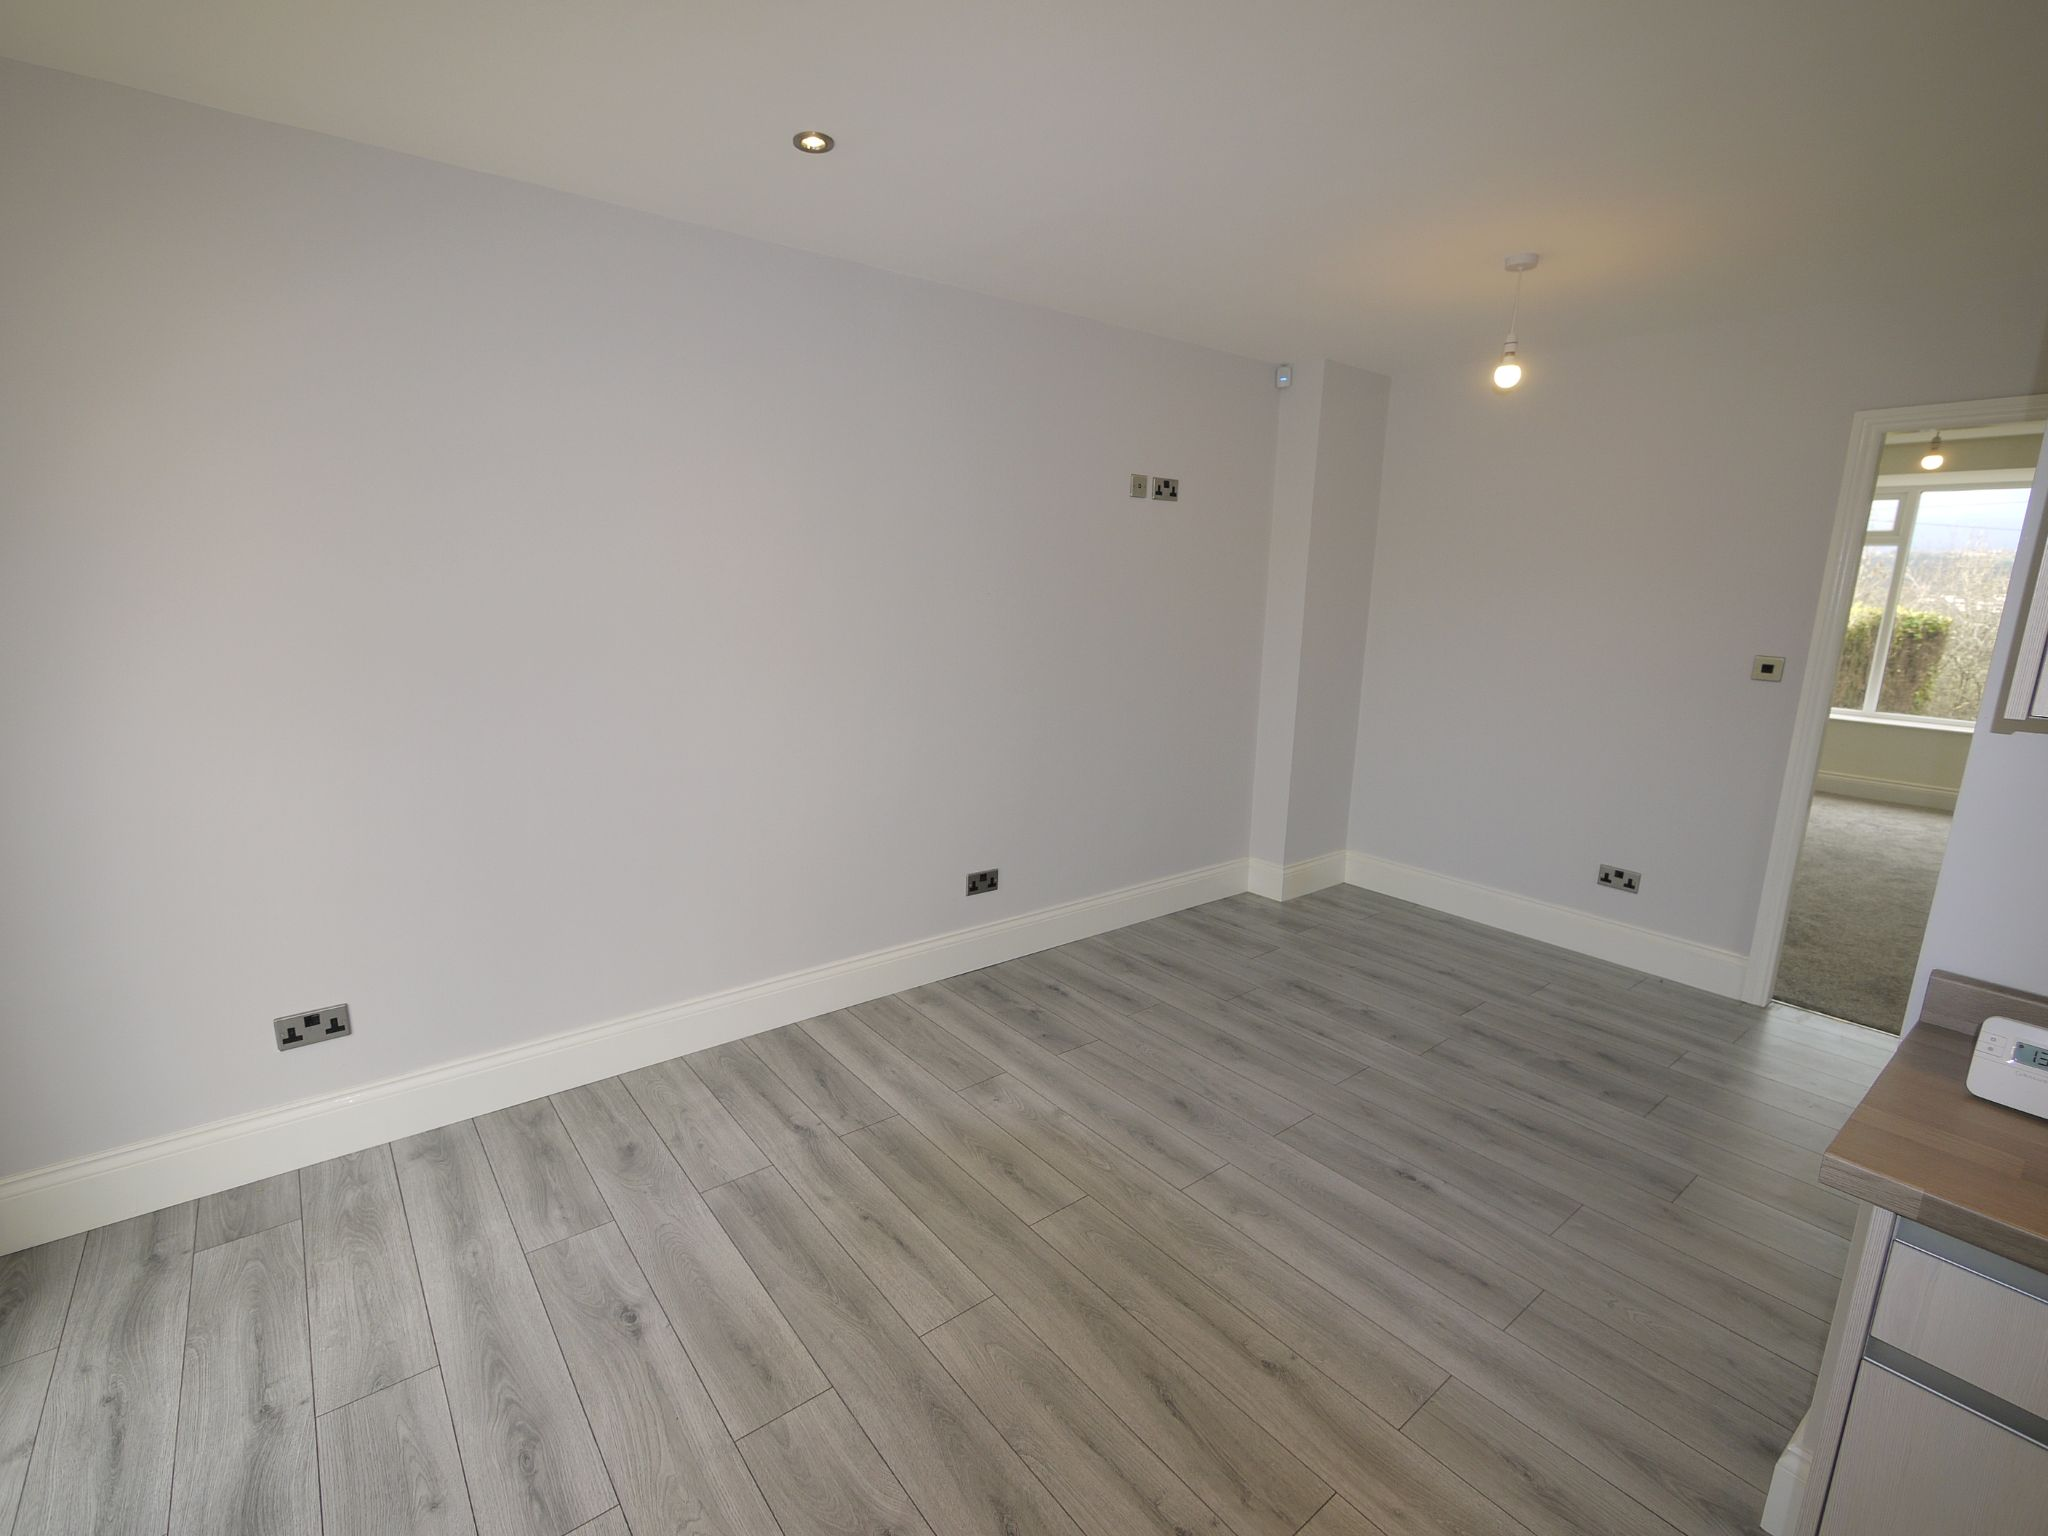 3 bedroom end terraced house SSTC in Brighouse - Dining Kit 2.